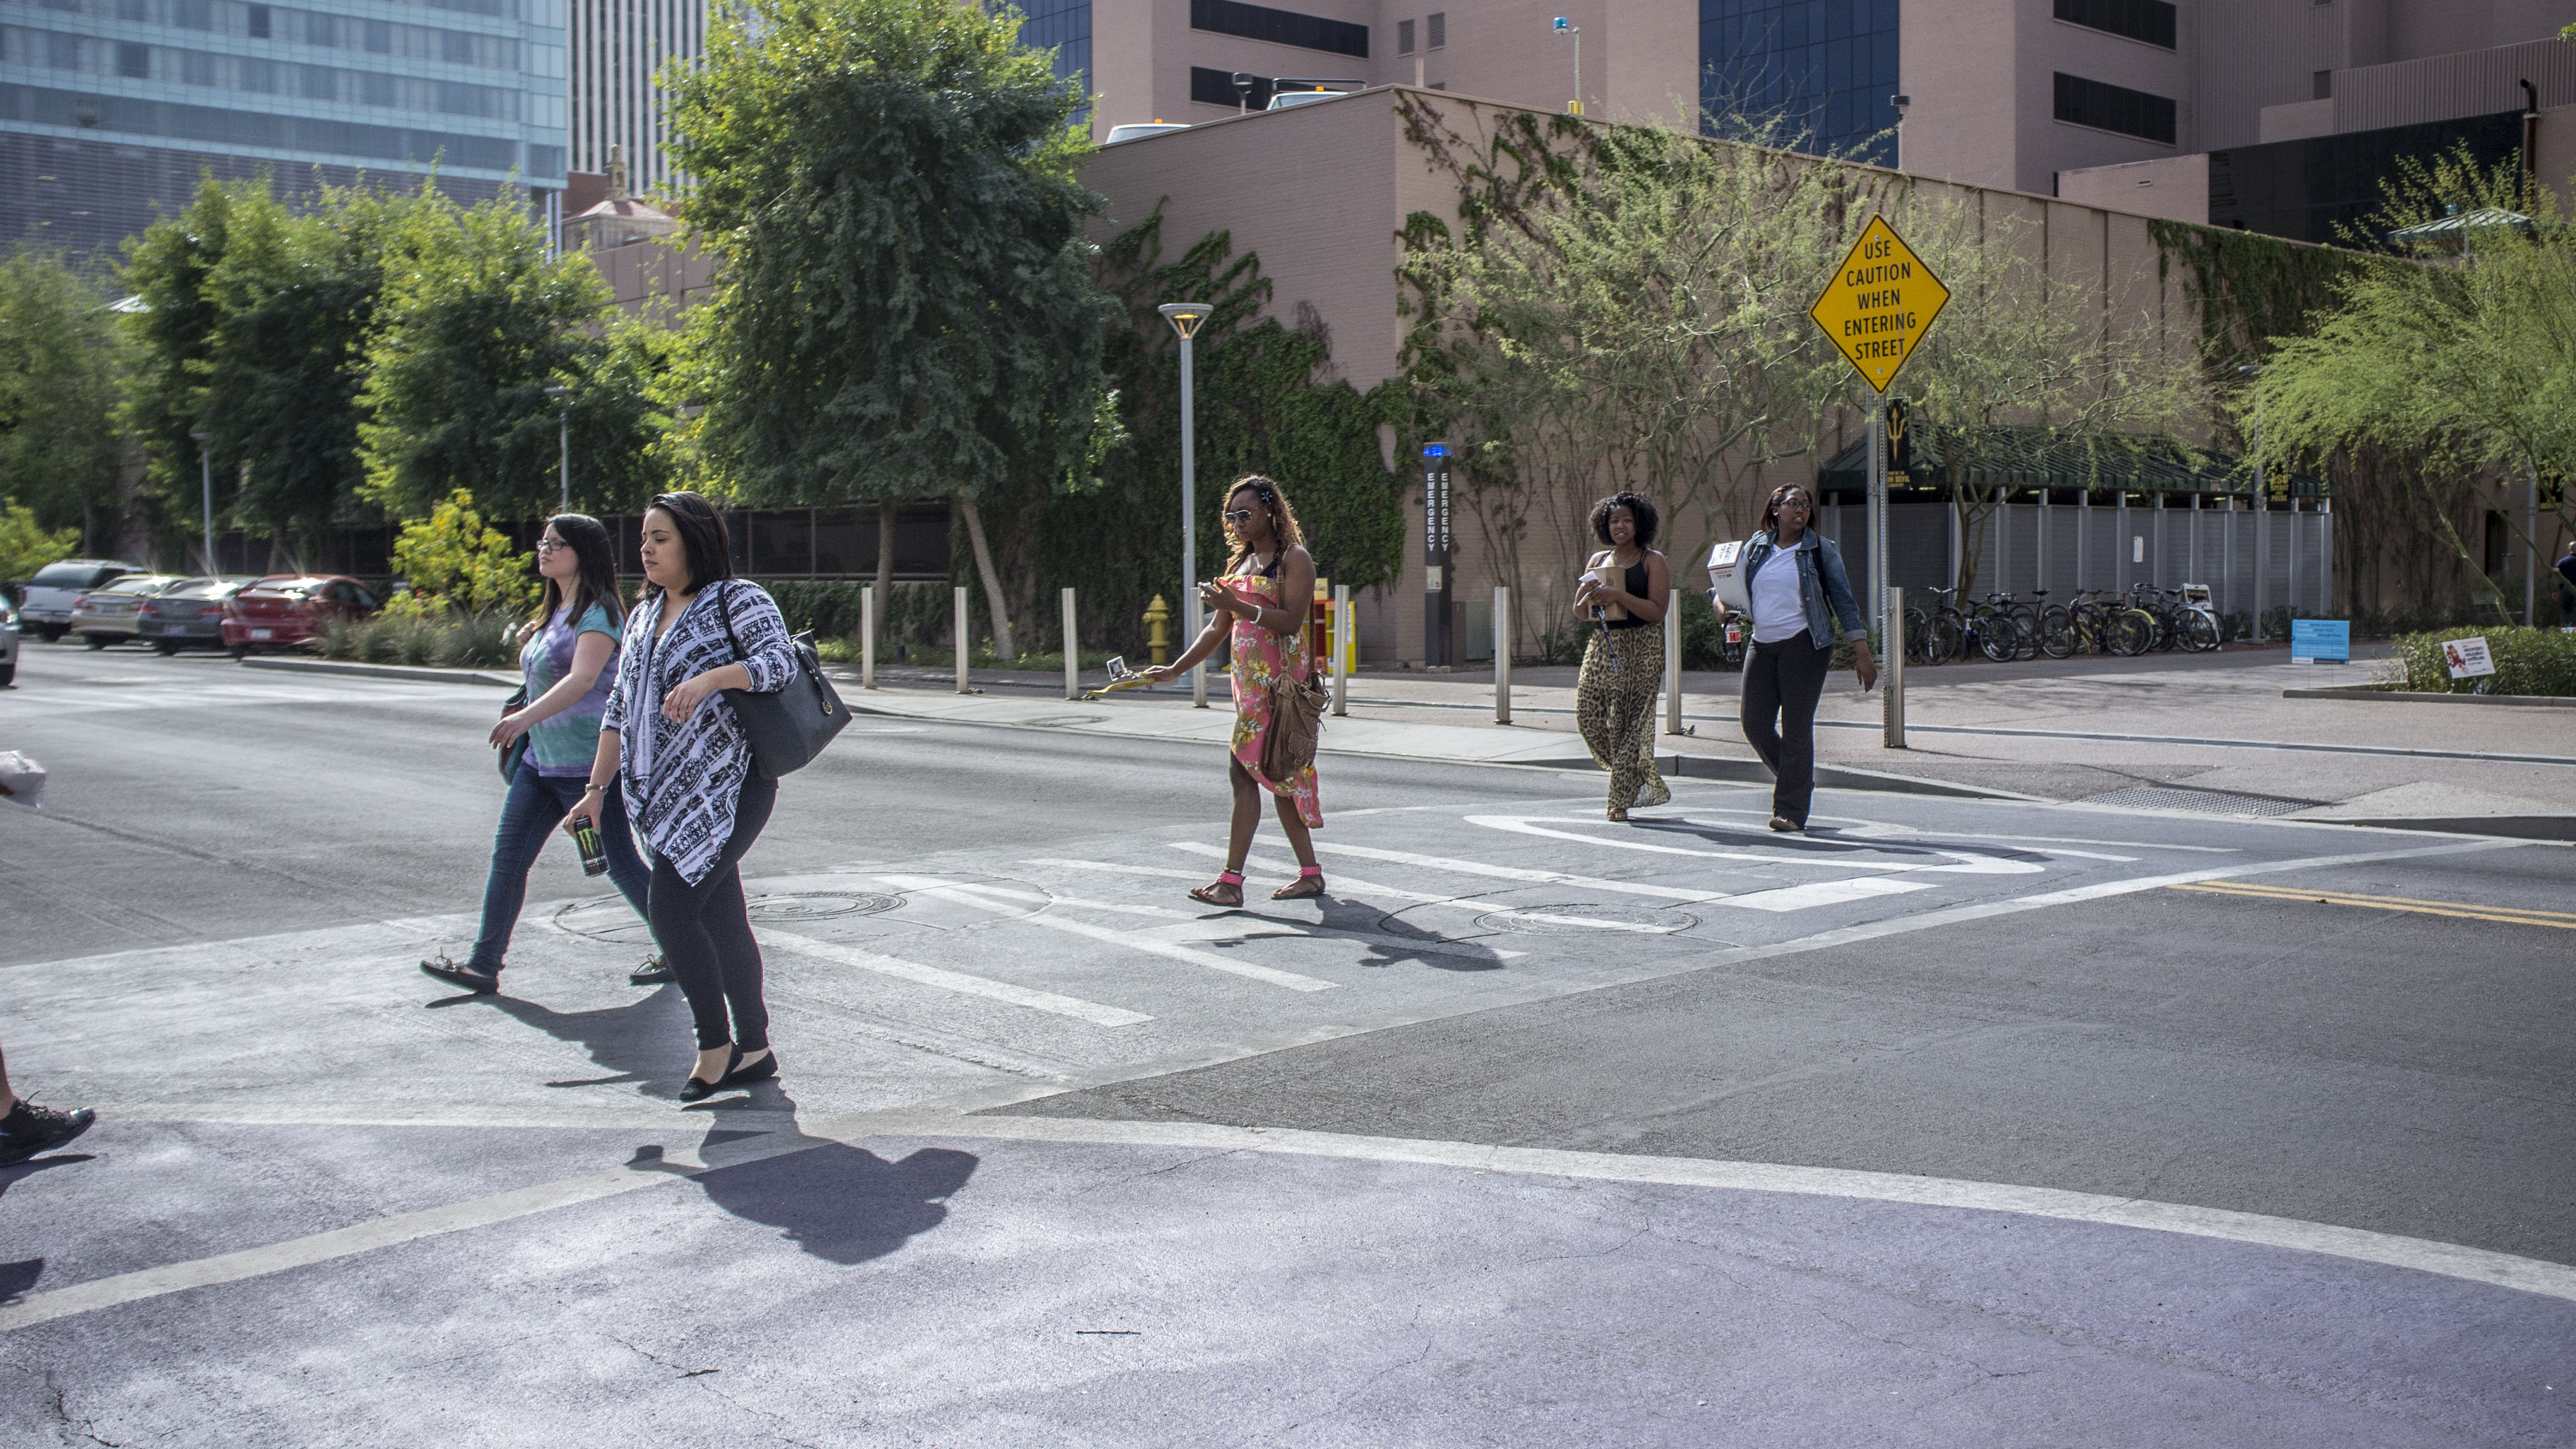 How can we encourage walkable communities?